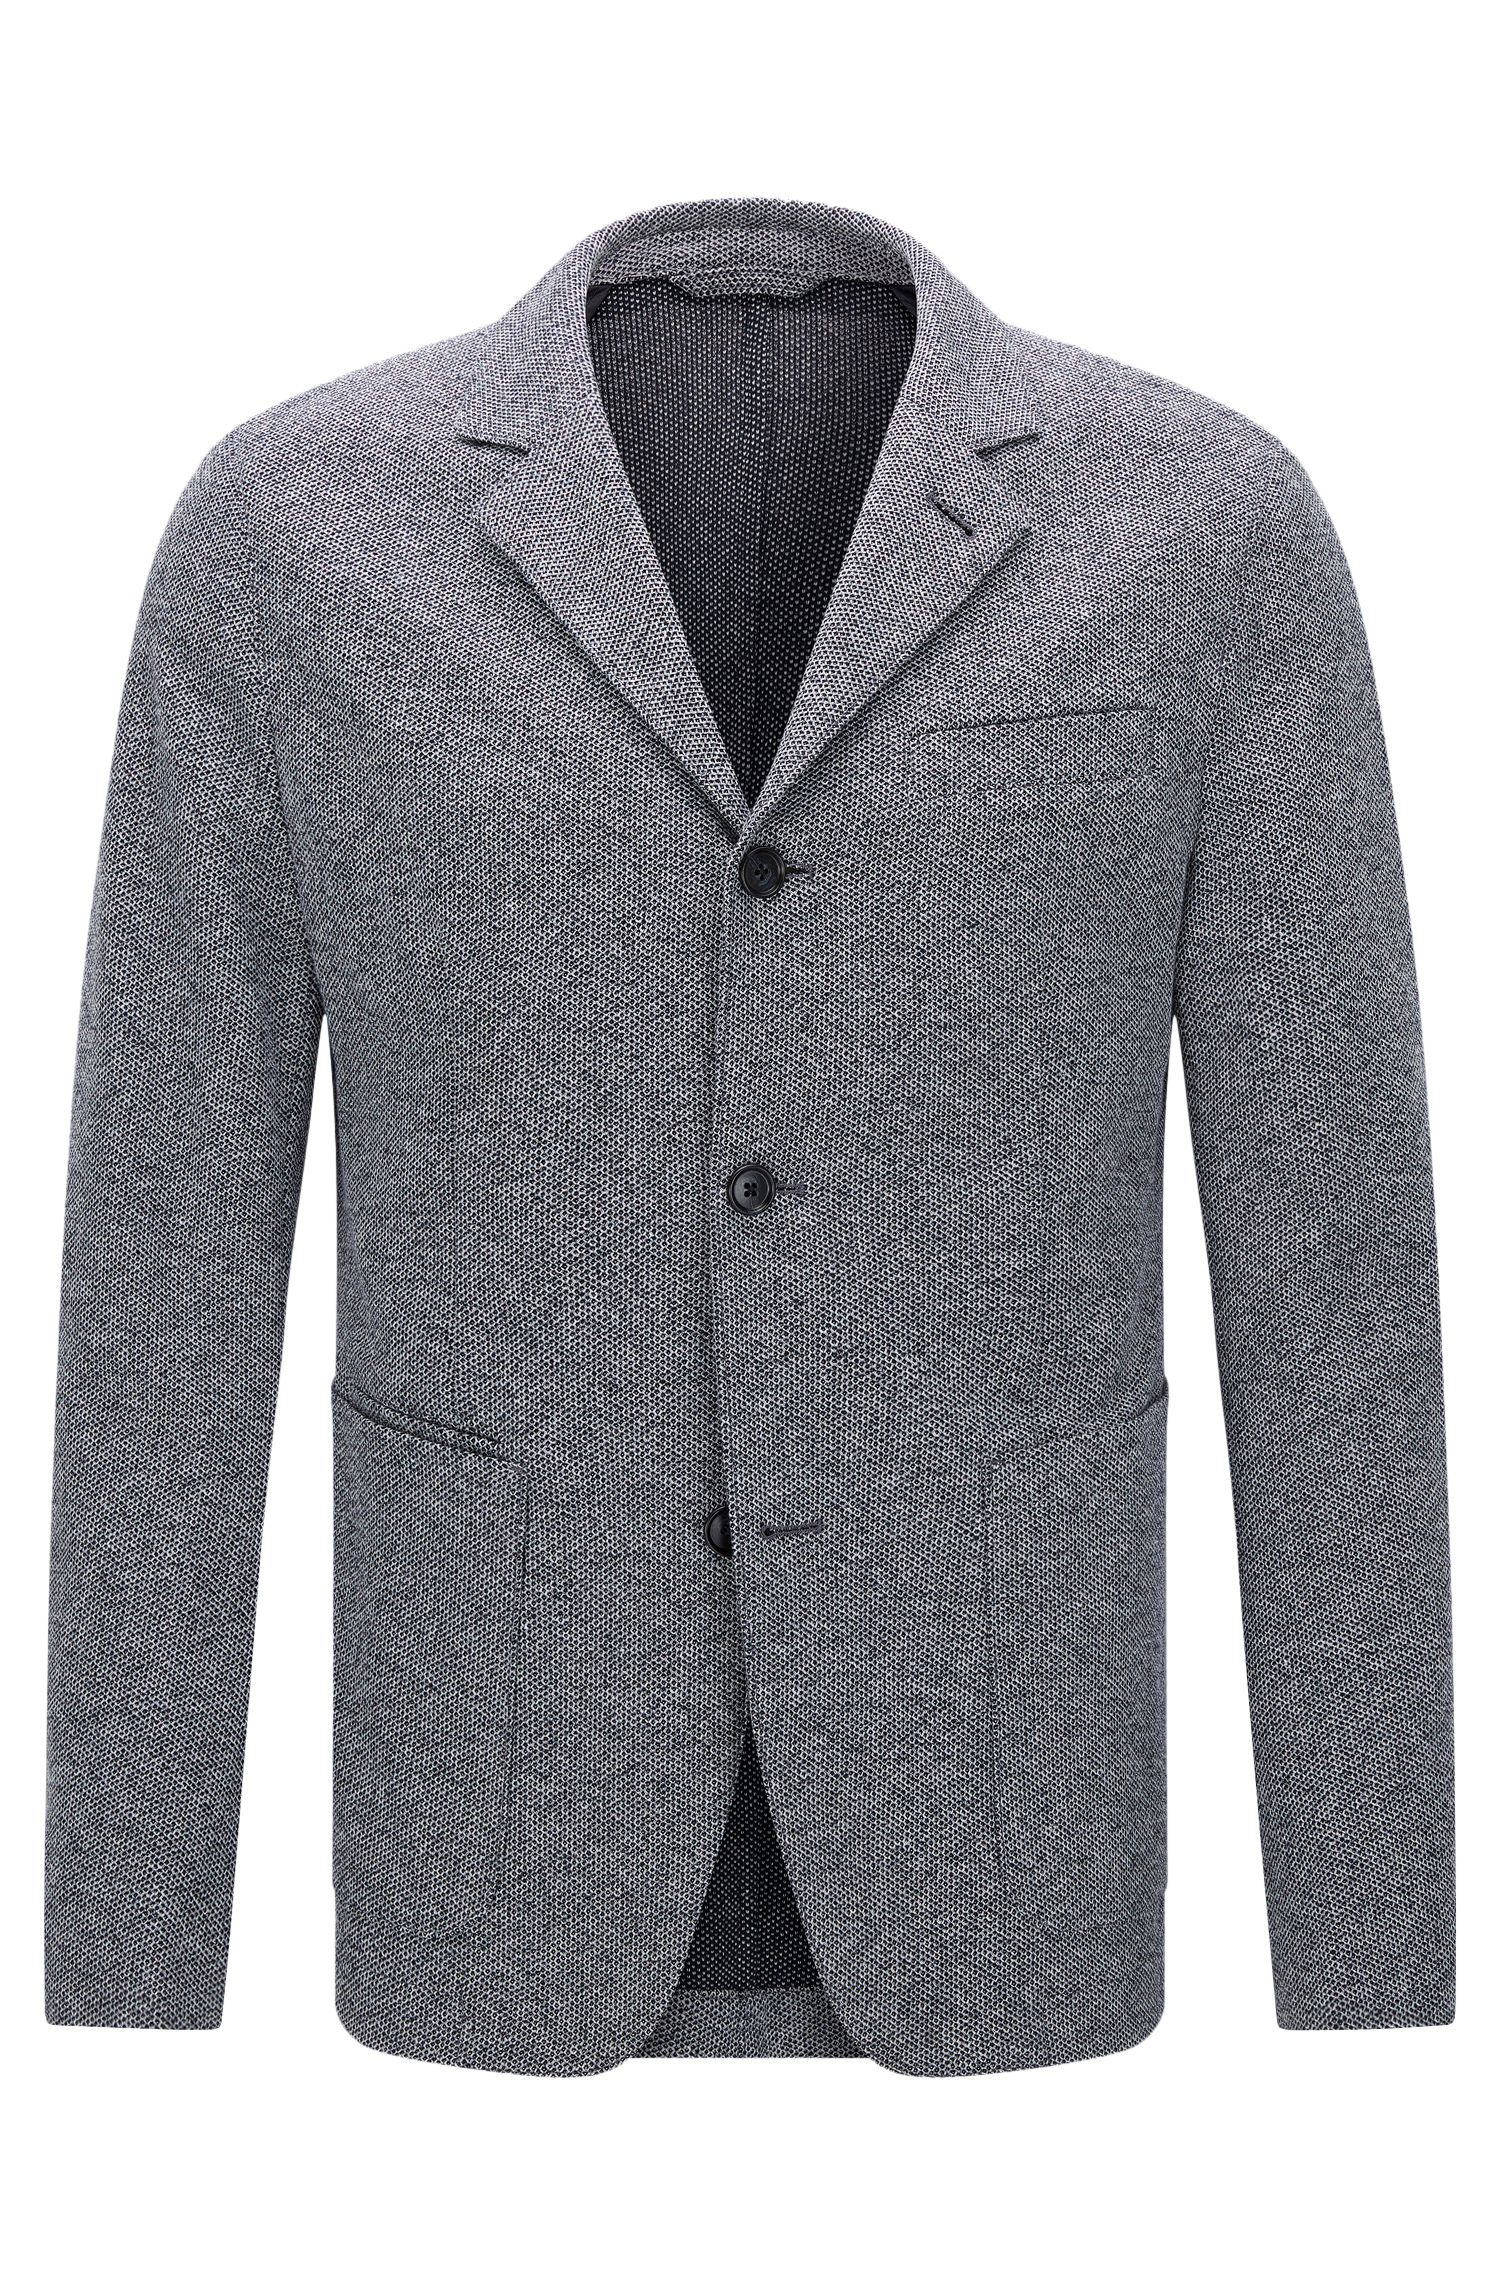 'T-Nedd' | Slim Fit, Italian Cotton Jersey Sport Coat